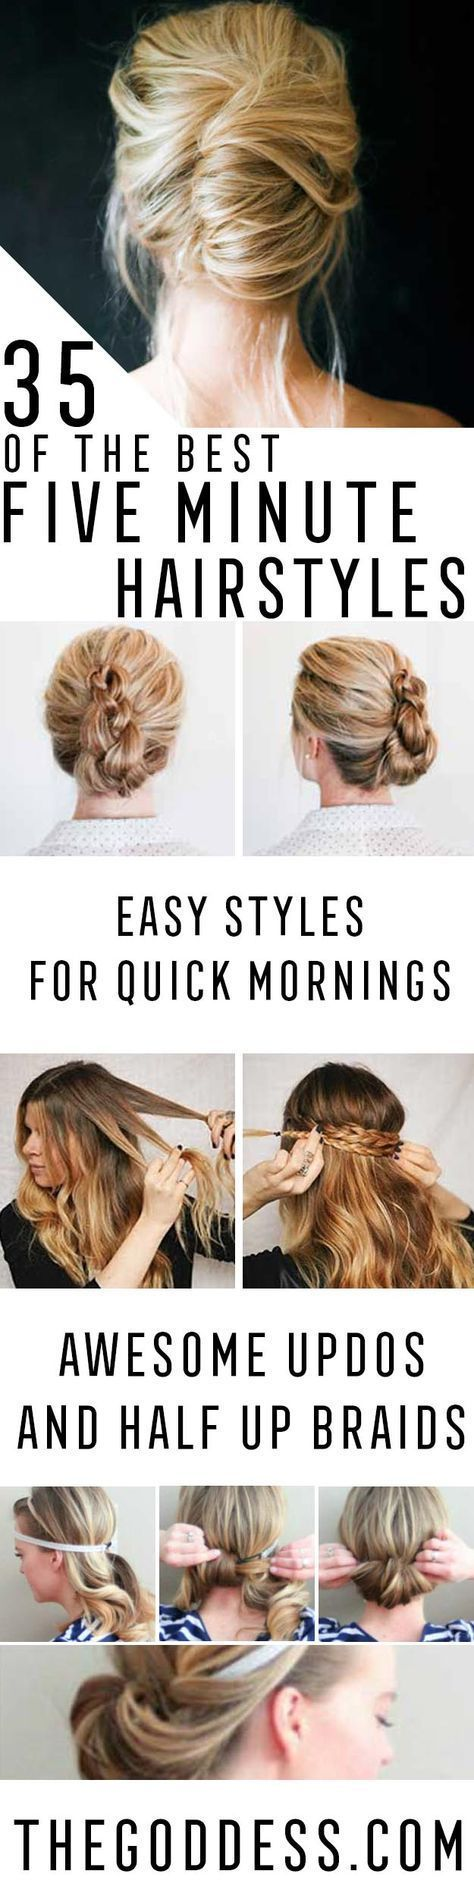 Best 5 Minute Hairstyles - Quick And Easy Hairstyles and Haircuts For Long Hair, That Are Super Simple and Great For Busy Mornings Or For School. Braids, Undo's, Ponytail Looks And Hair Styles For Short Hair, Medium Length Hair, And Long Hair. Step By Step Tutorials, Tips, And Hacks For Teens, For Kids, And For Wet And Dry Hair. Great Looks For Curls, Simple And Cute Braids With Half Up Half Down Hairstyles. Five Minute Looks For Church, For Shoulder Length Hair, For Moms, And Messy Buns For